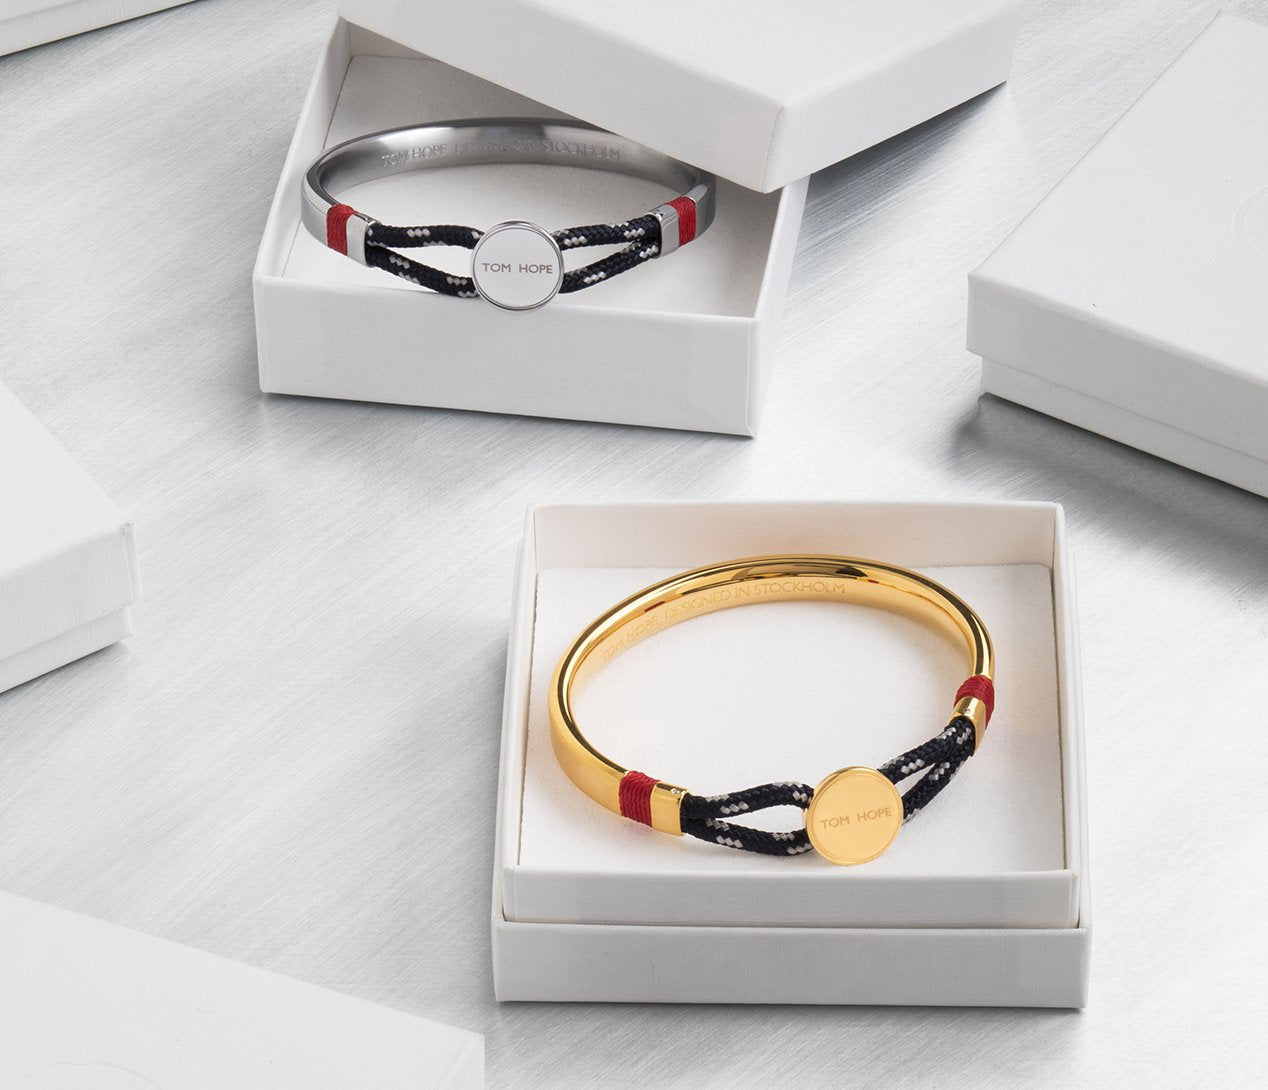 tomhope-bracelets-hybrid-collection_d150a146-53af-461f-bf2e-3d4d734ea296